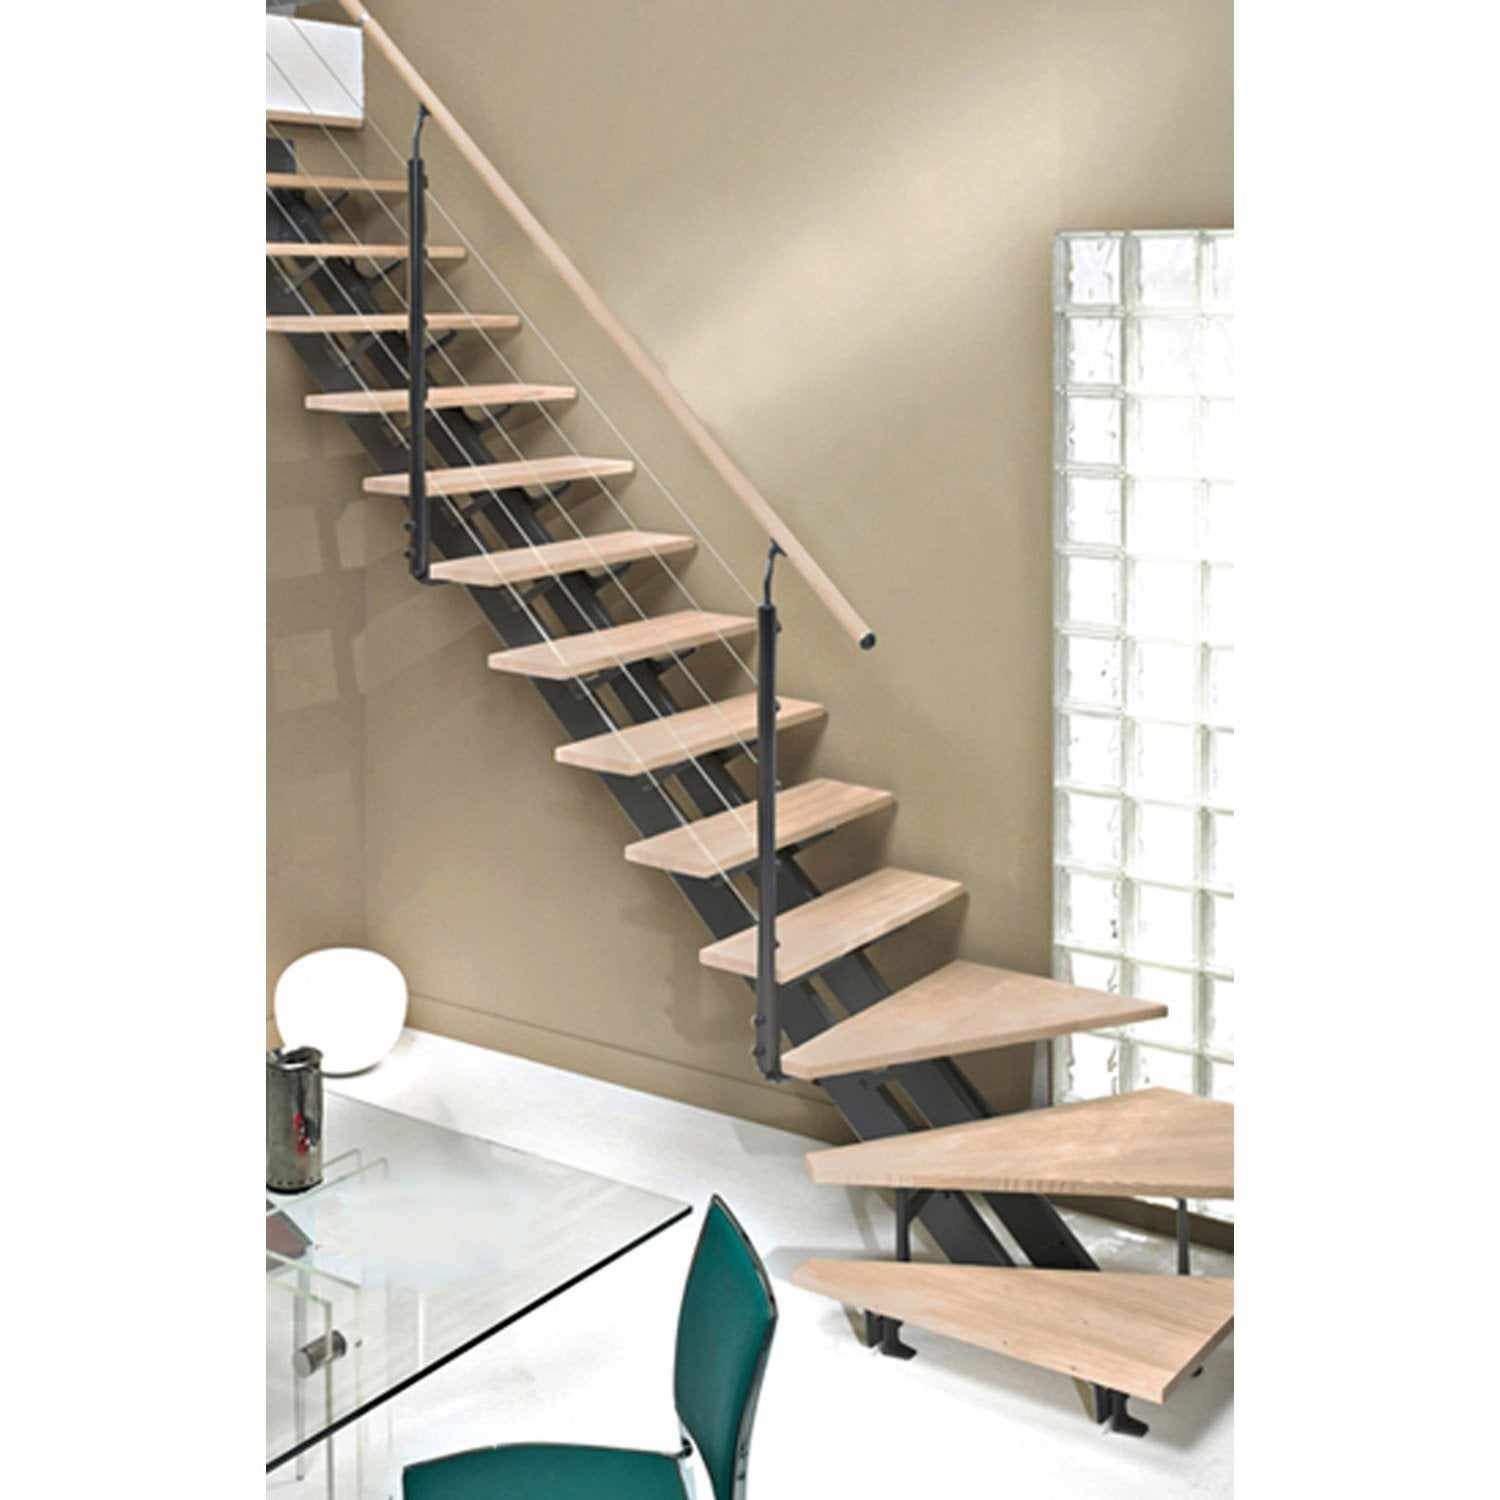 habillage escalier bois top balancoire leroy merlin habillage escalier bois pour bebe siege. Black Bedroom Furniture Sets. Home Design Ideas